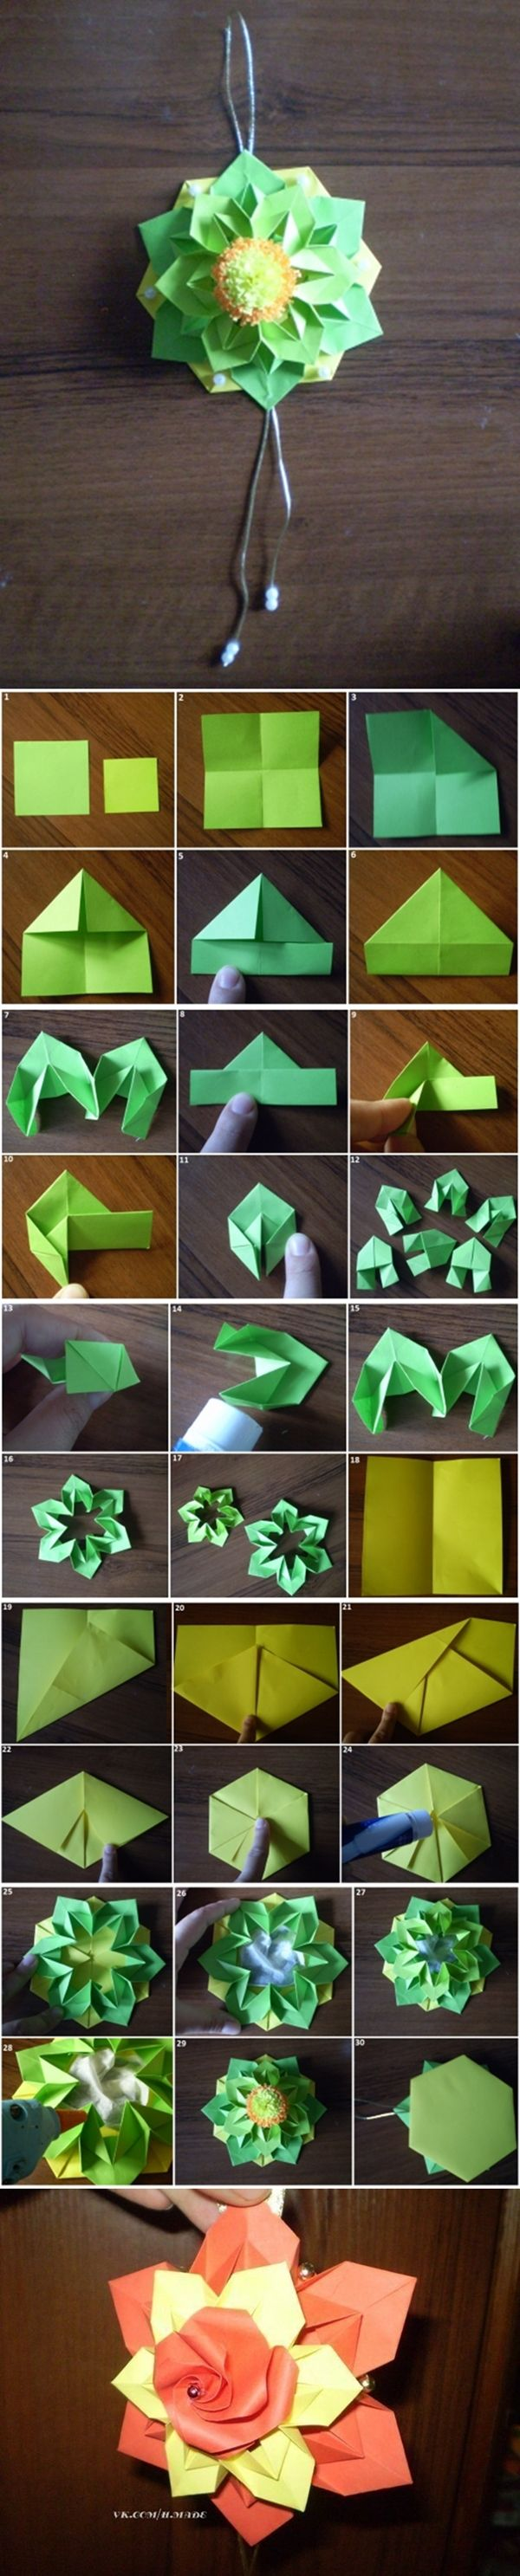 photo tutorial .... unit origami ... beautiful dimentsional ornament ... Flores de papel - Blog Pitacos e Achados - Acesse: https://pitacoseachados.wordpress.com - https://www.facebook.com/pitacoseachados - #pitacoseachados